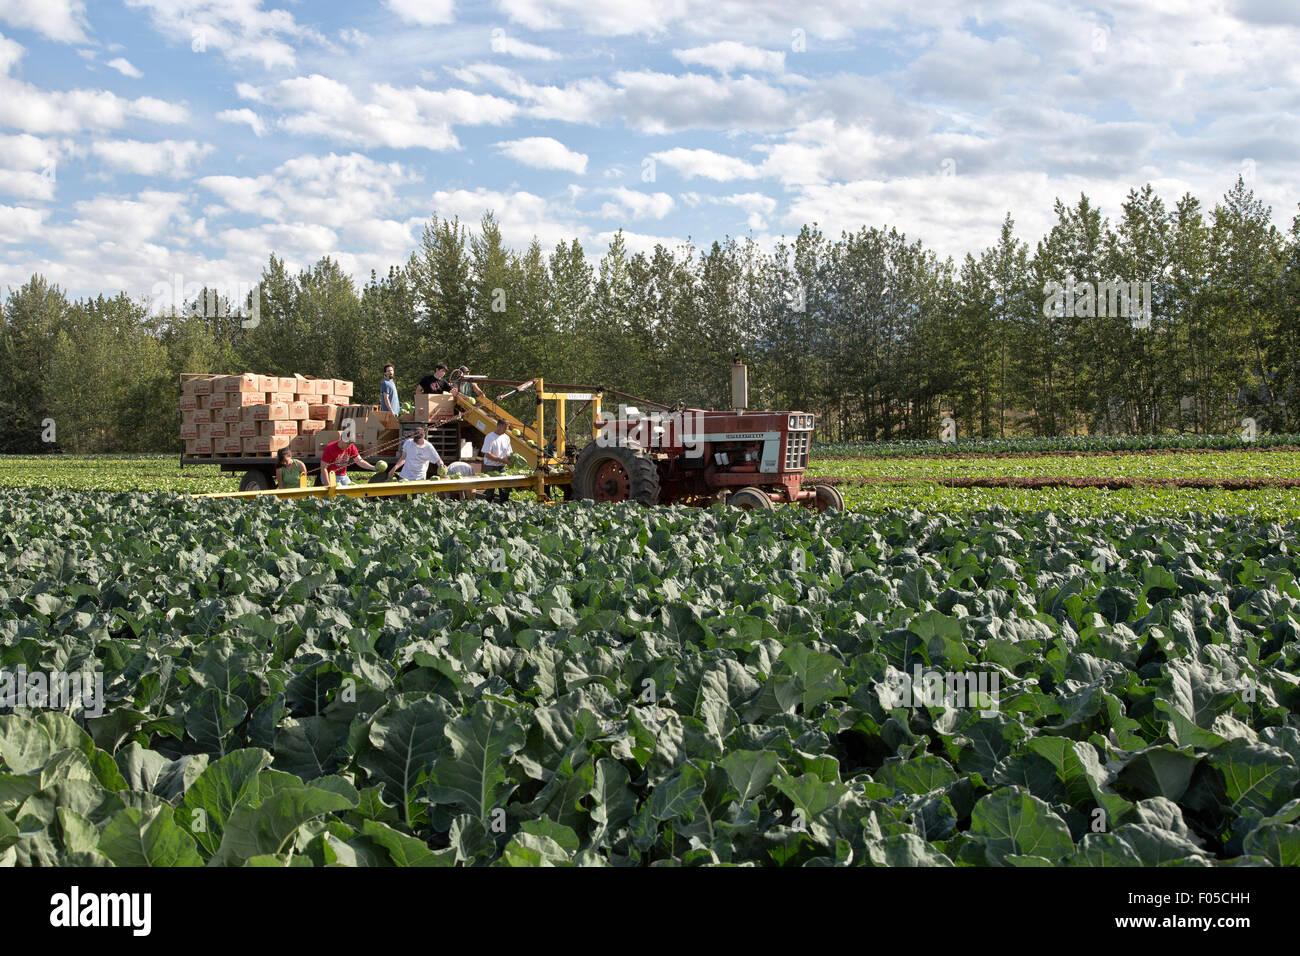 Farm workers harvesting Cabbage. - Stock Image